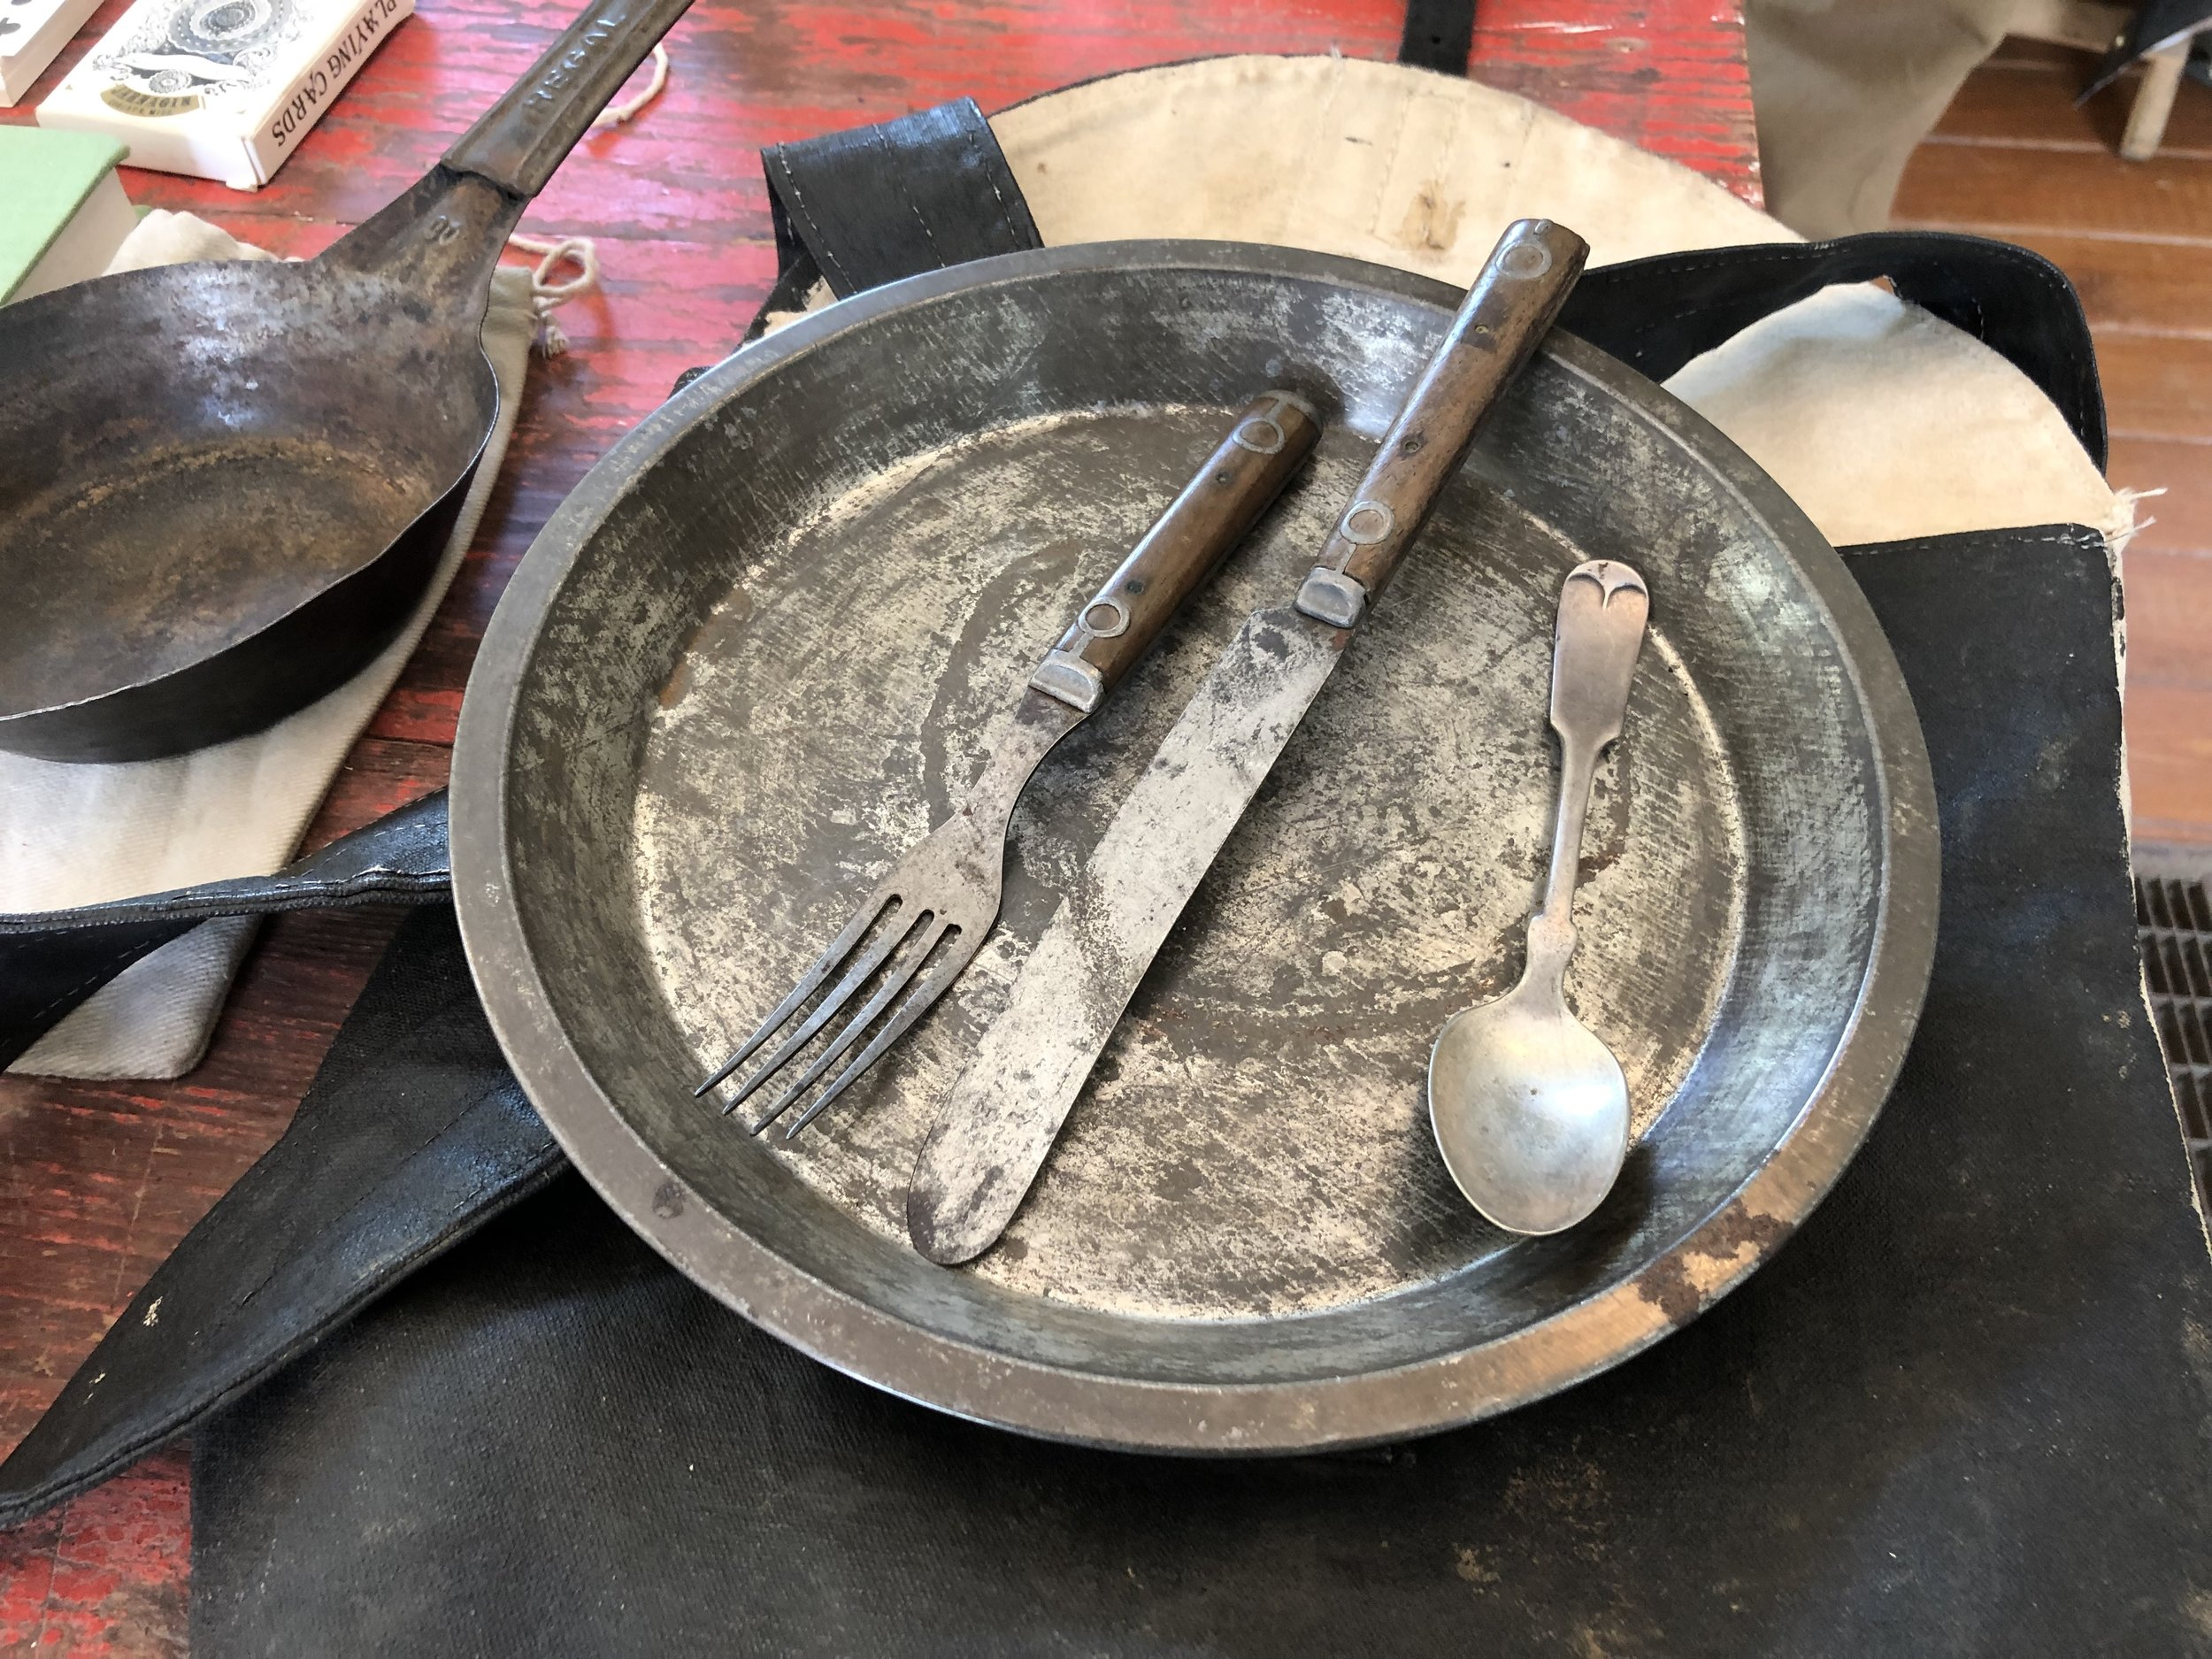 infantryman's tin plate and utensils